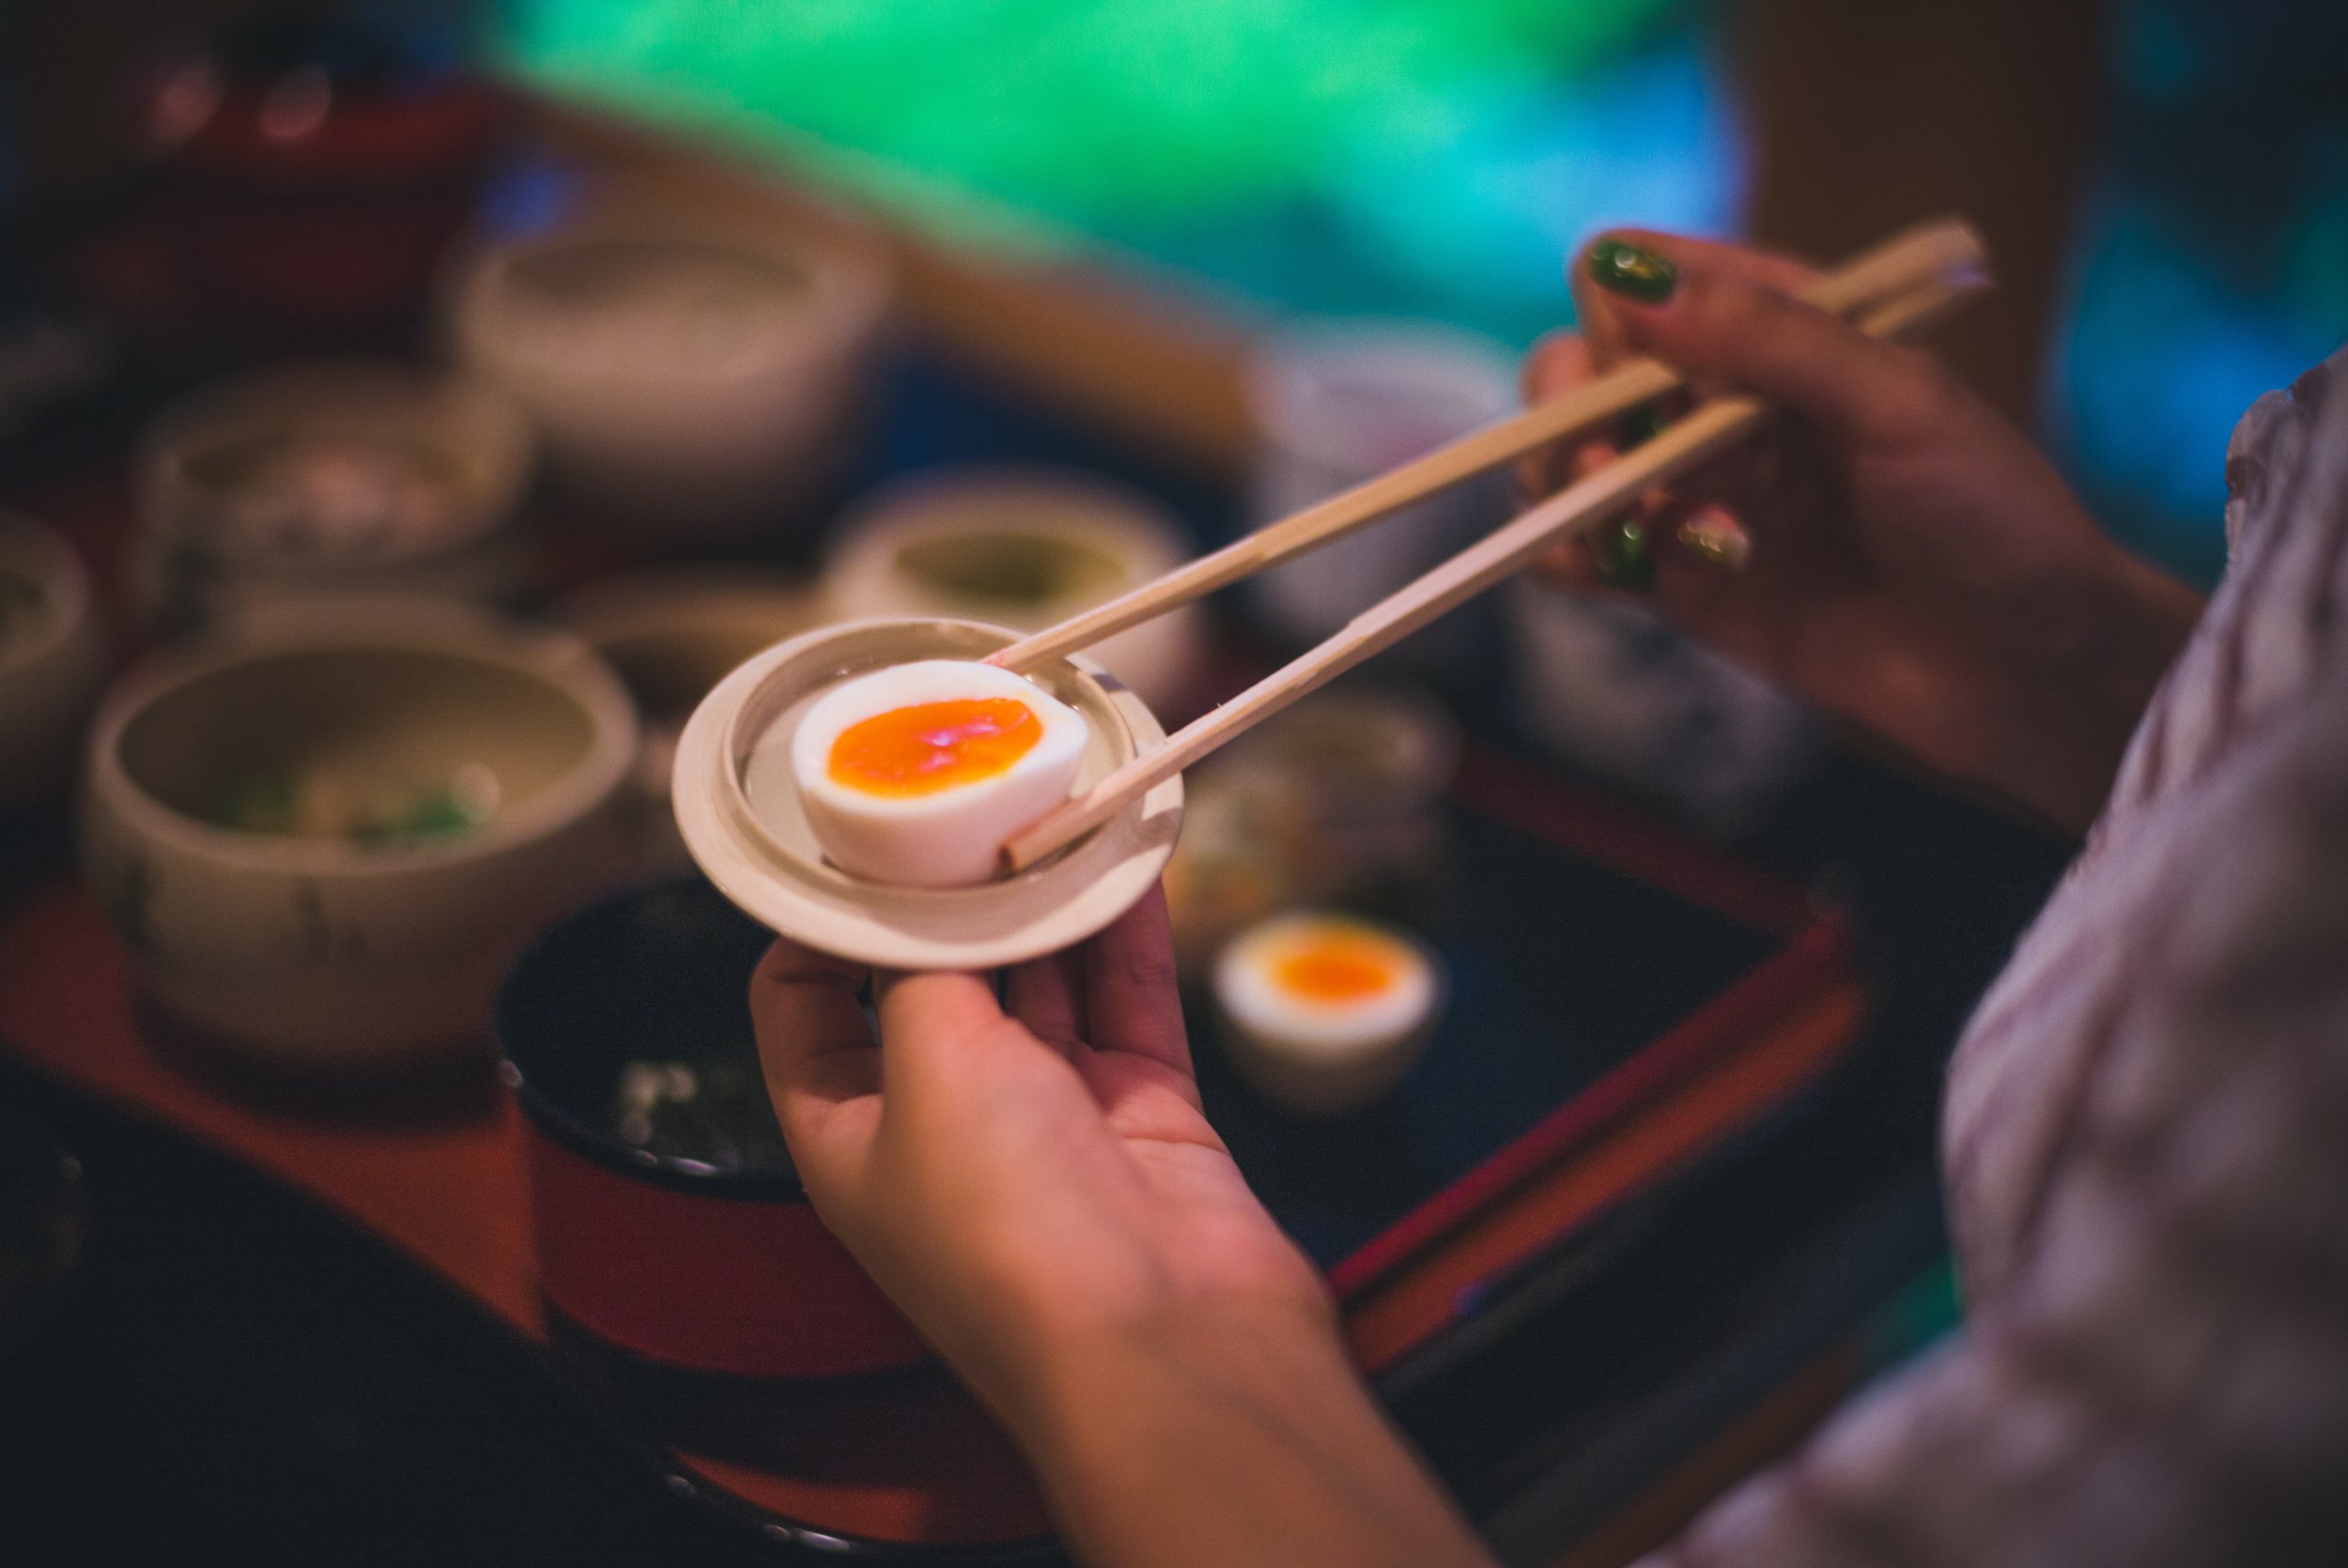 hardboiled egg on a small plate being held with chopsticks